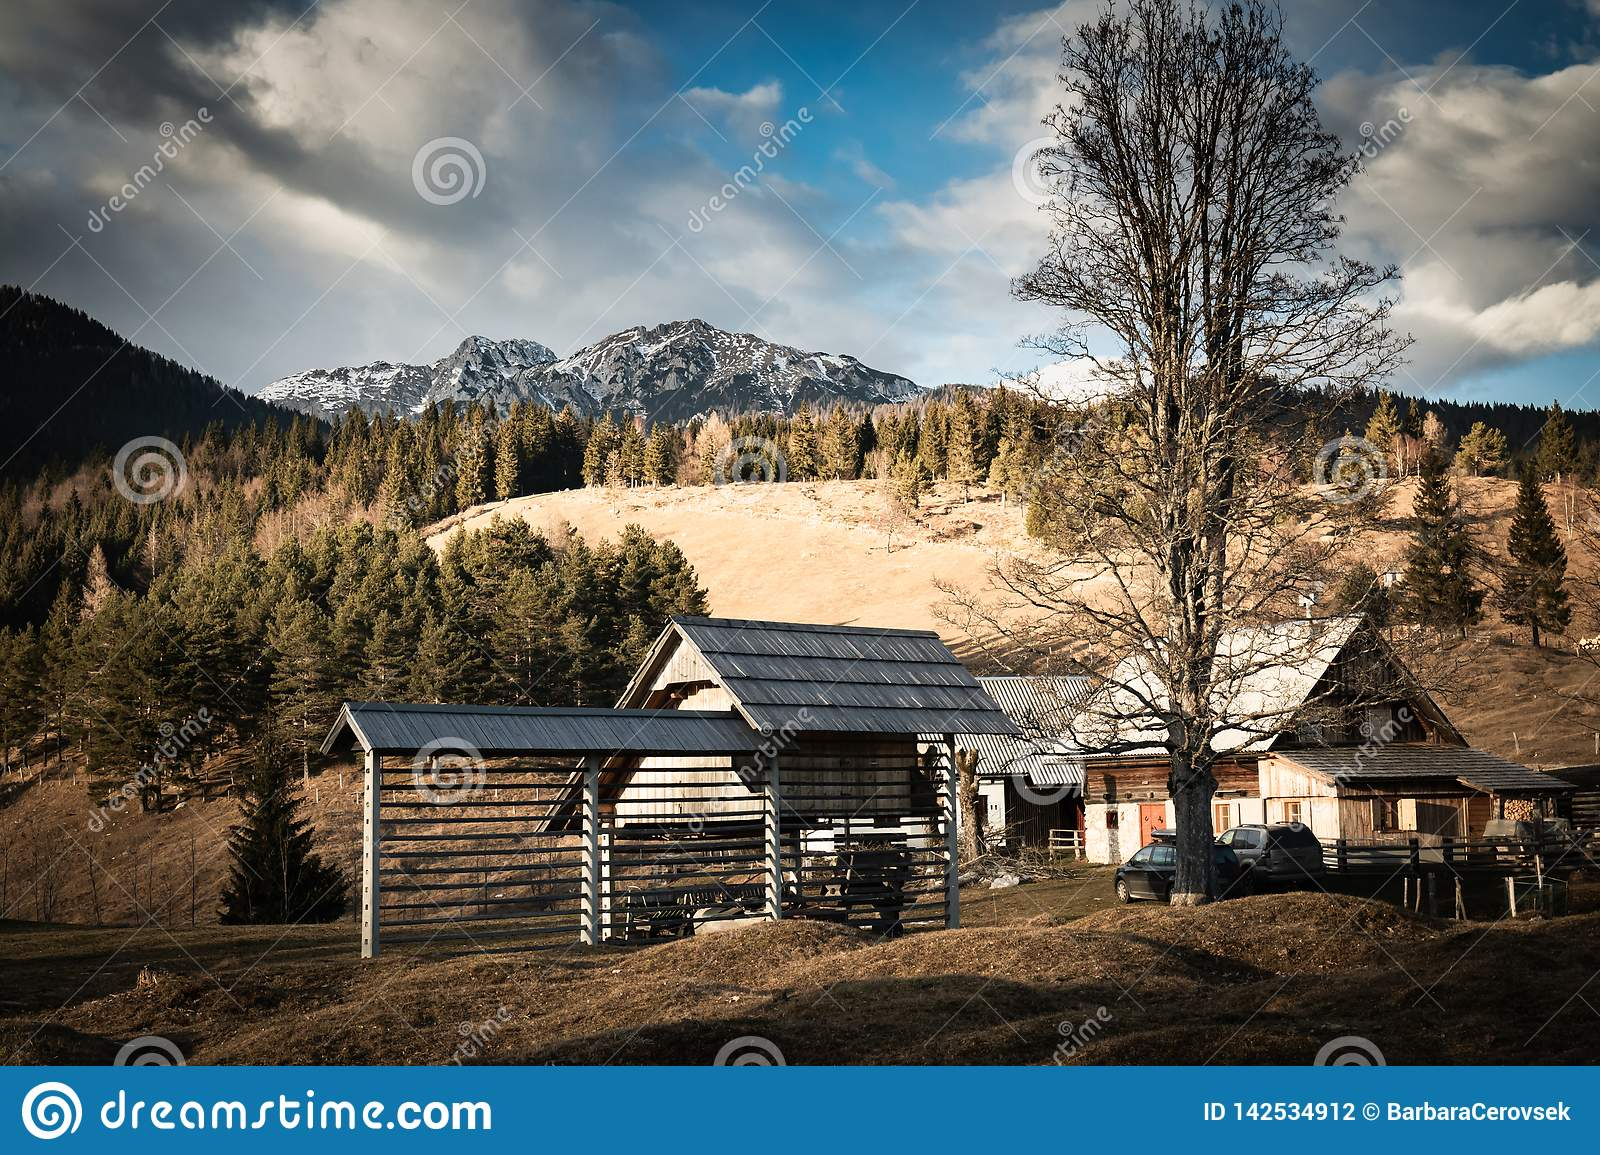 Scenic view in alpine forest mountains with isolated wooden chalet house in idyllic sunny winter environment, pokljuka, slovenia